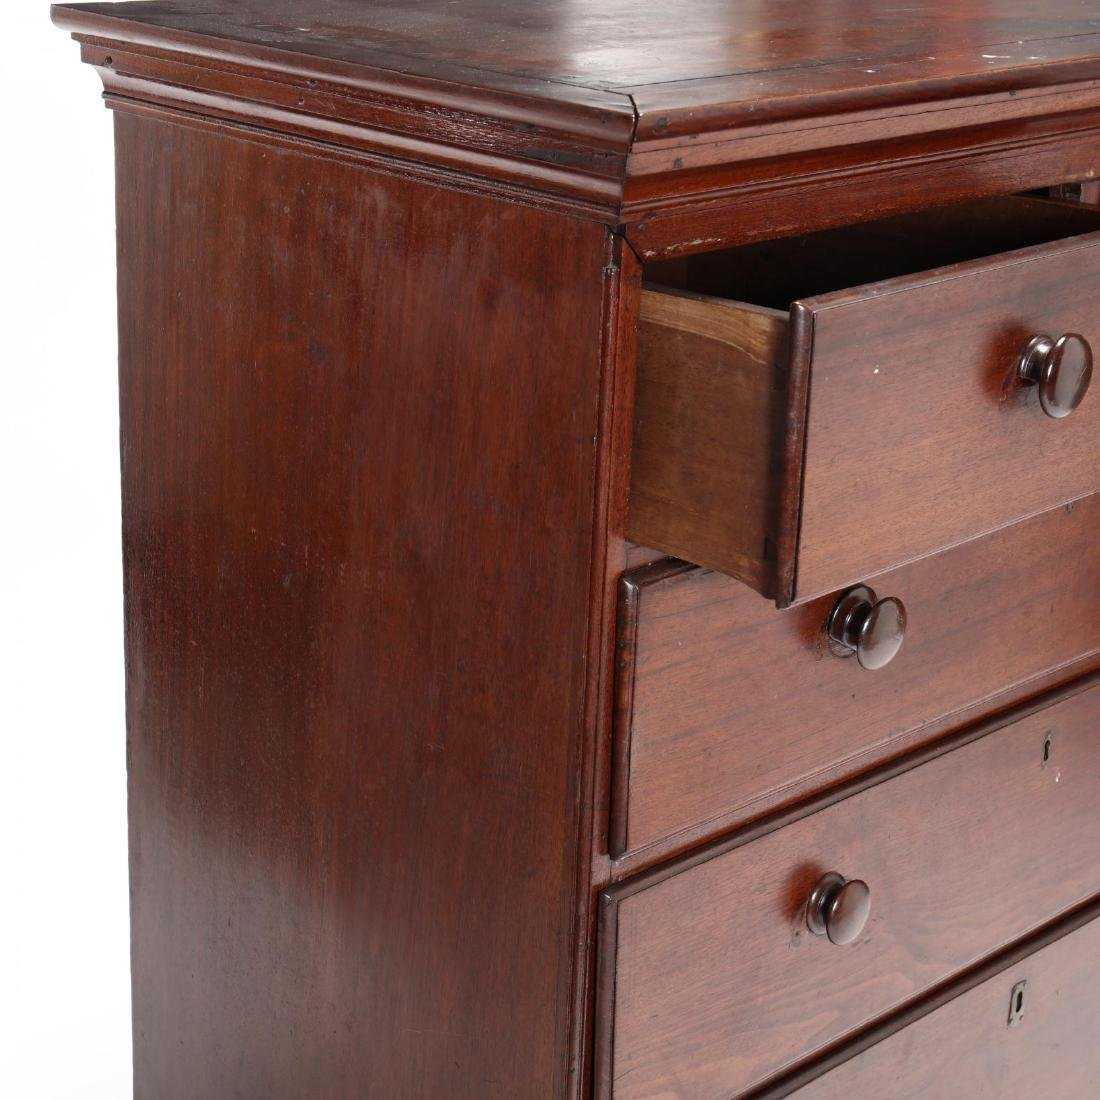 Southern Chippendale Walnut Chest of Drawers - 4